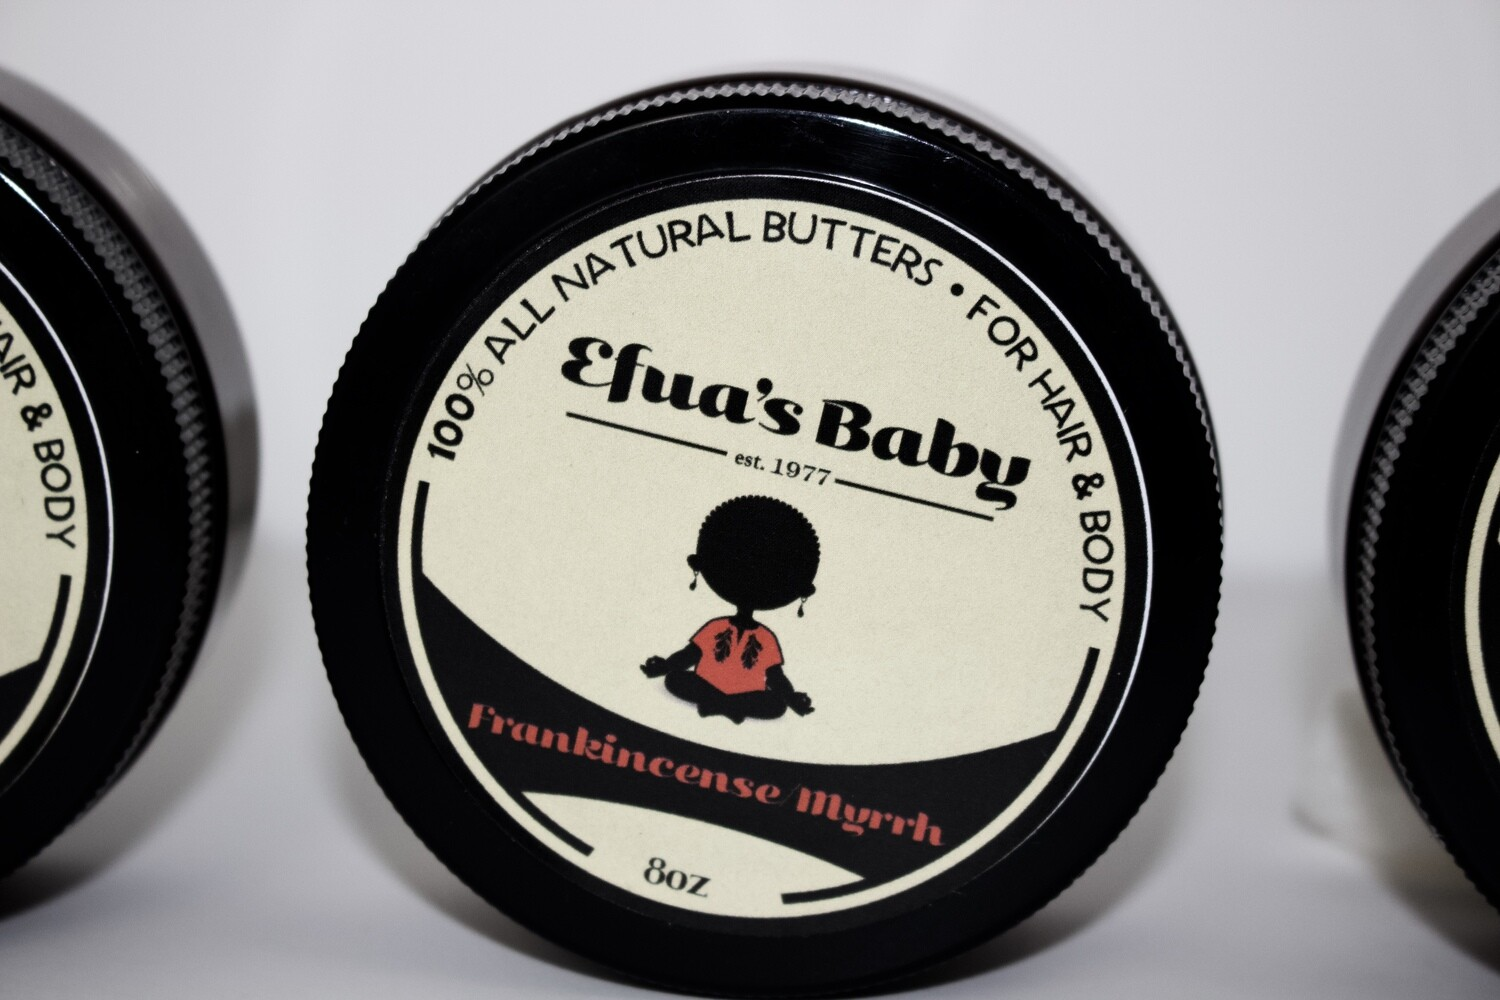 Frankincense/Myrrh 8oz Hair & Body Butter